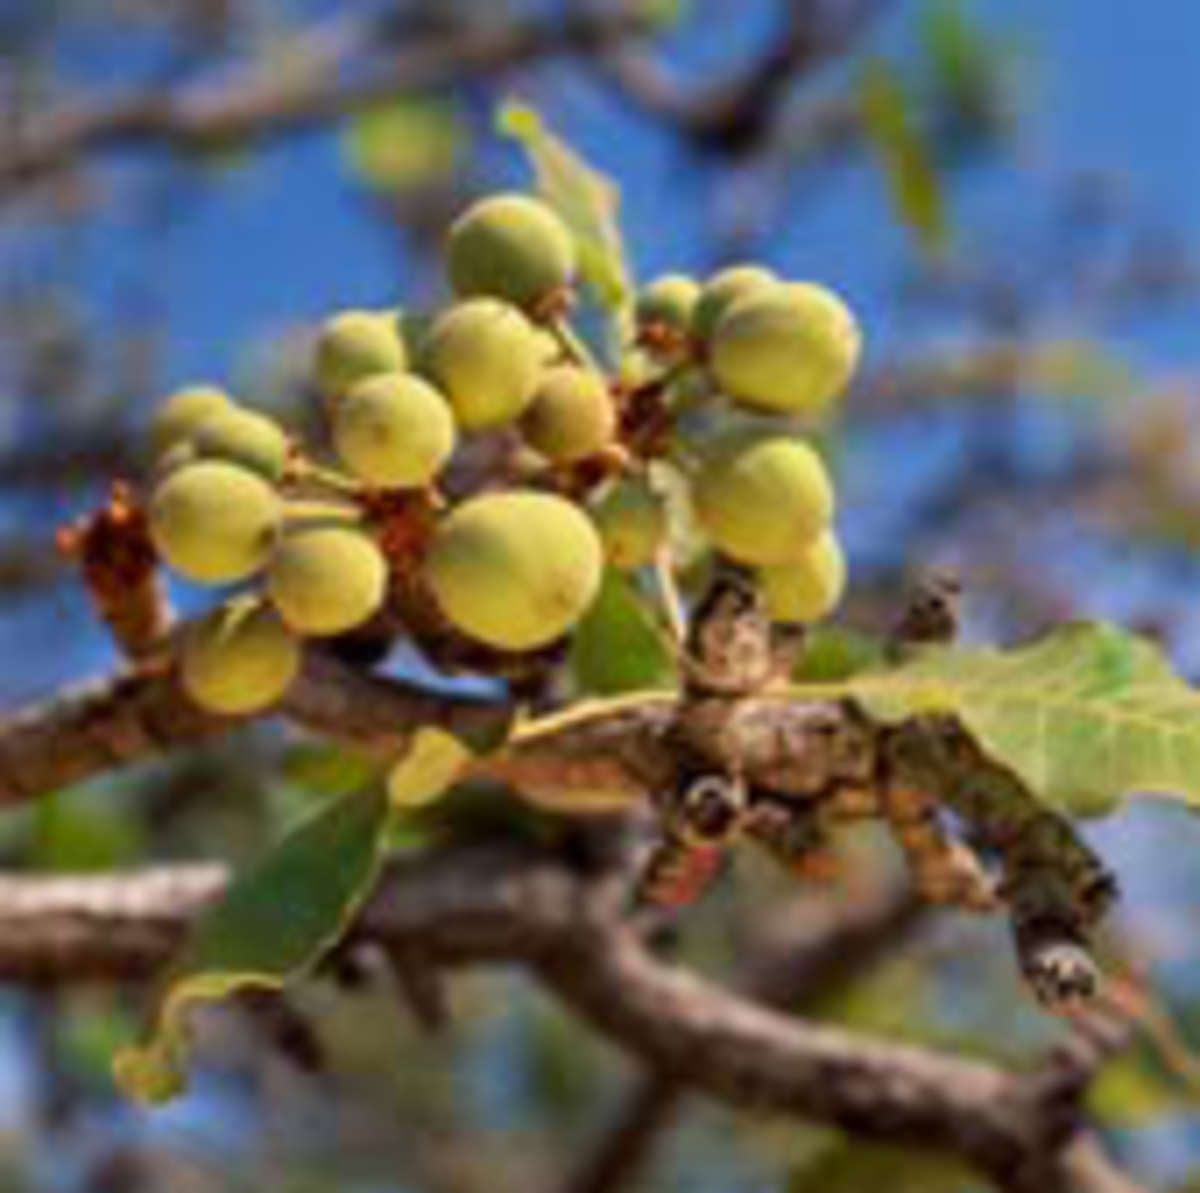 Fruit from the Karite tree that is the shea nut.